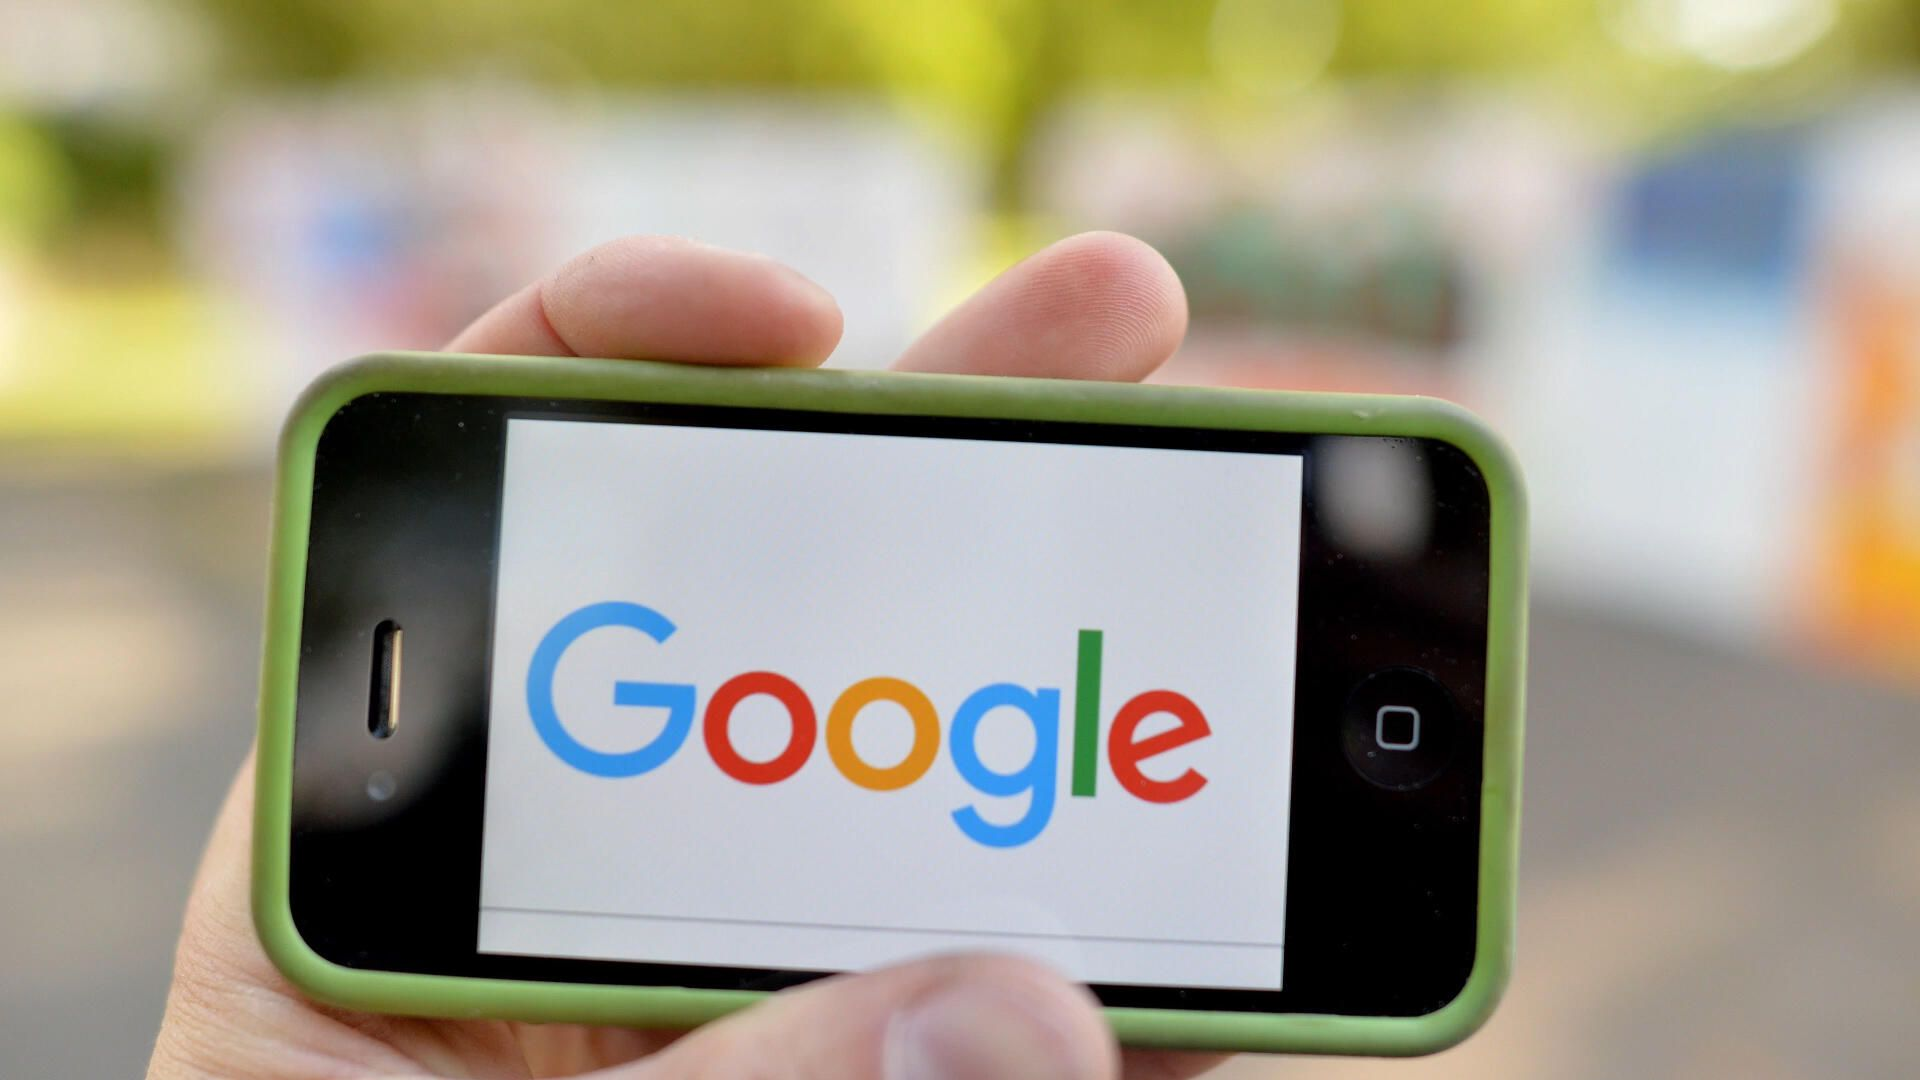 , Google to change search results again, Vine's back (sort of) – Video – Source CNET Tech, iBSC Technologies - learning management services, LMS, Wordpress, CMS, Moodle, IT, Email, Web Hosting, Cloud Server,Cloud Computing